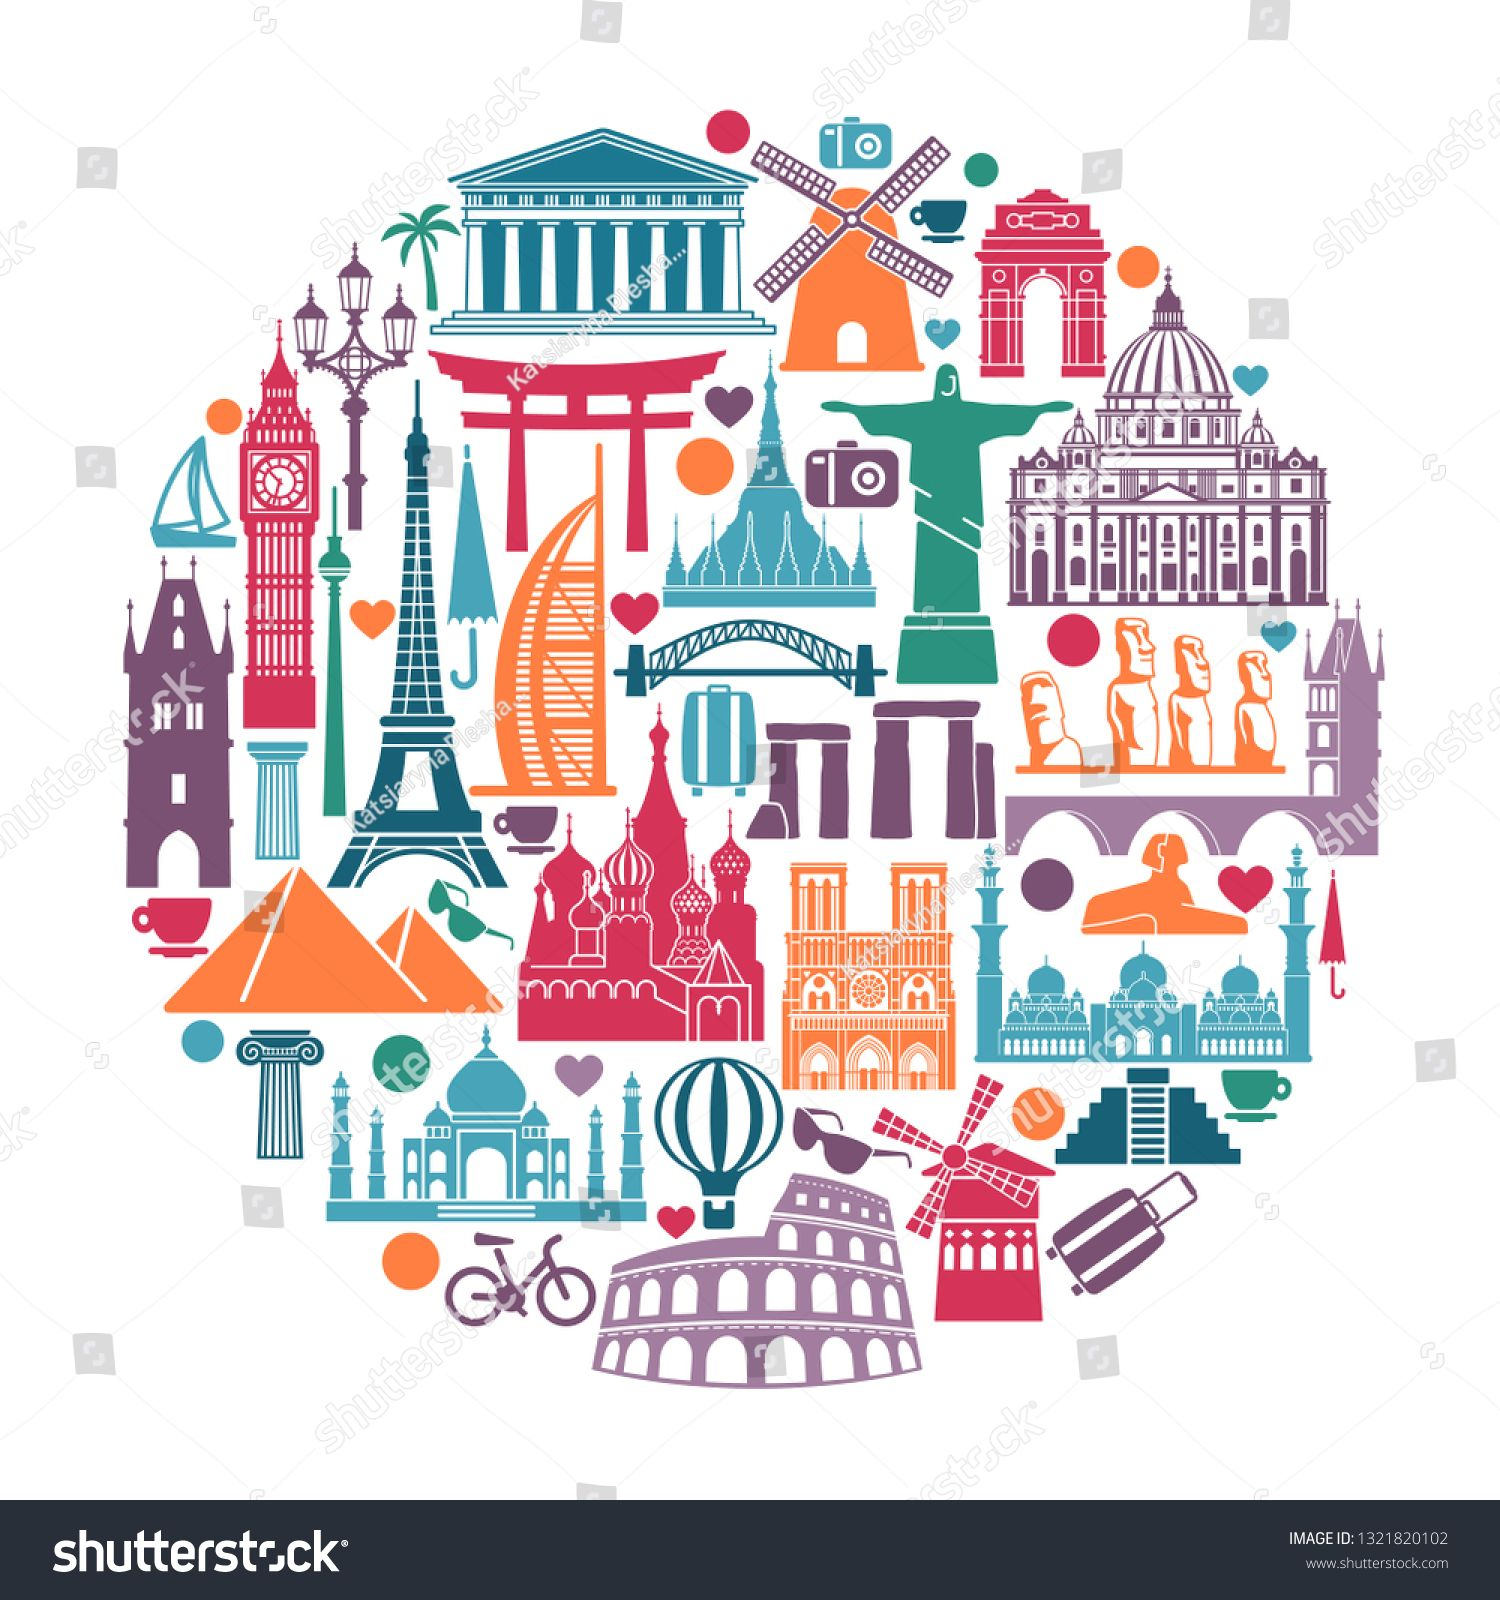 Symbols of architectural monuments and world tourist attractions in the shape of a circle